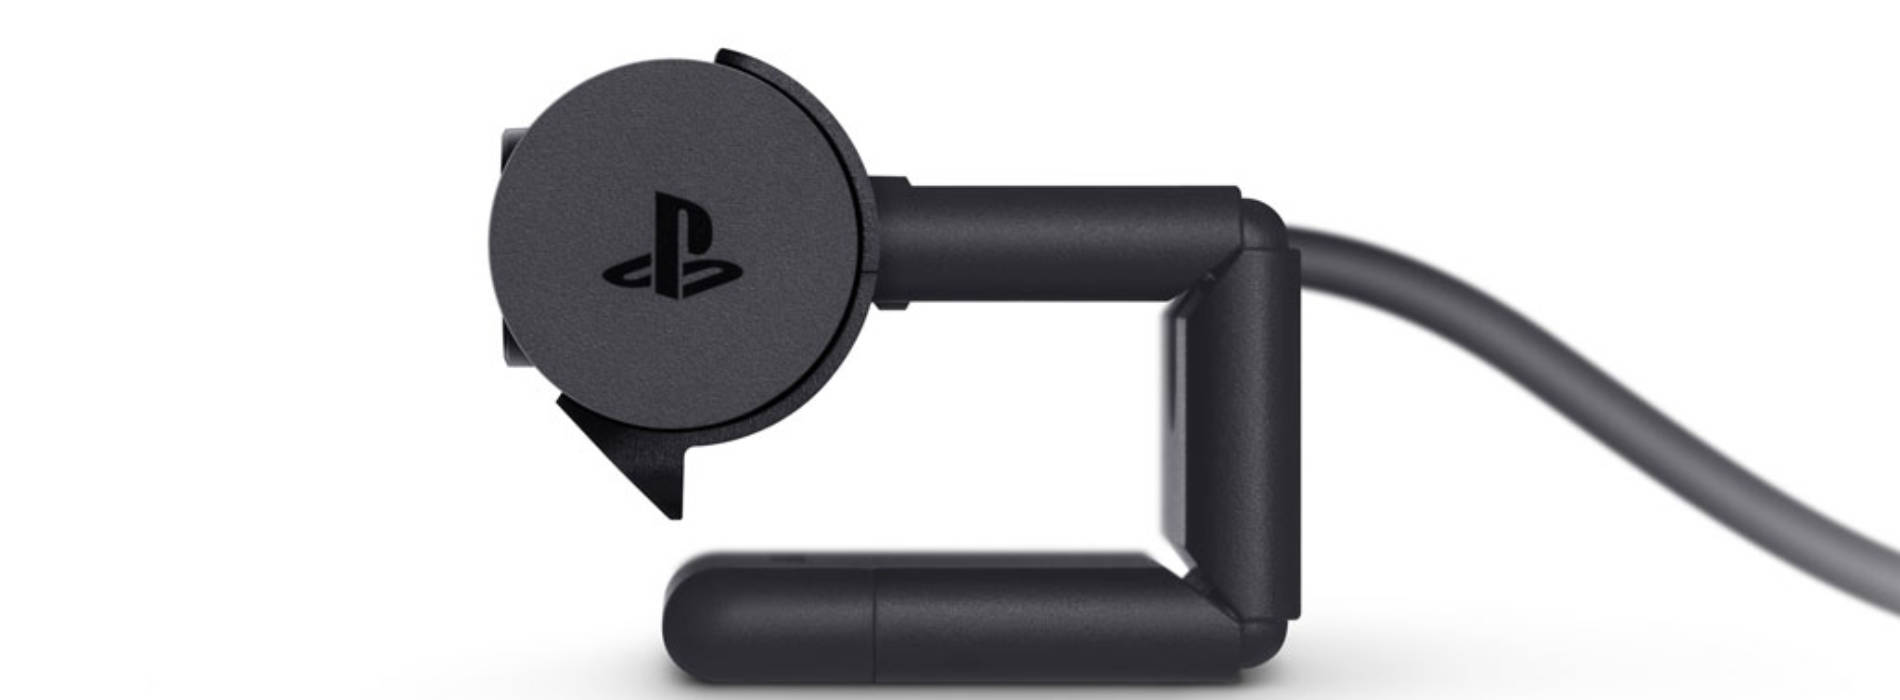 Tres accesorios para PlayStation 4 imprescindibles